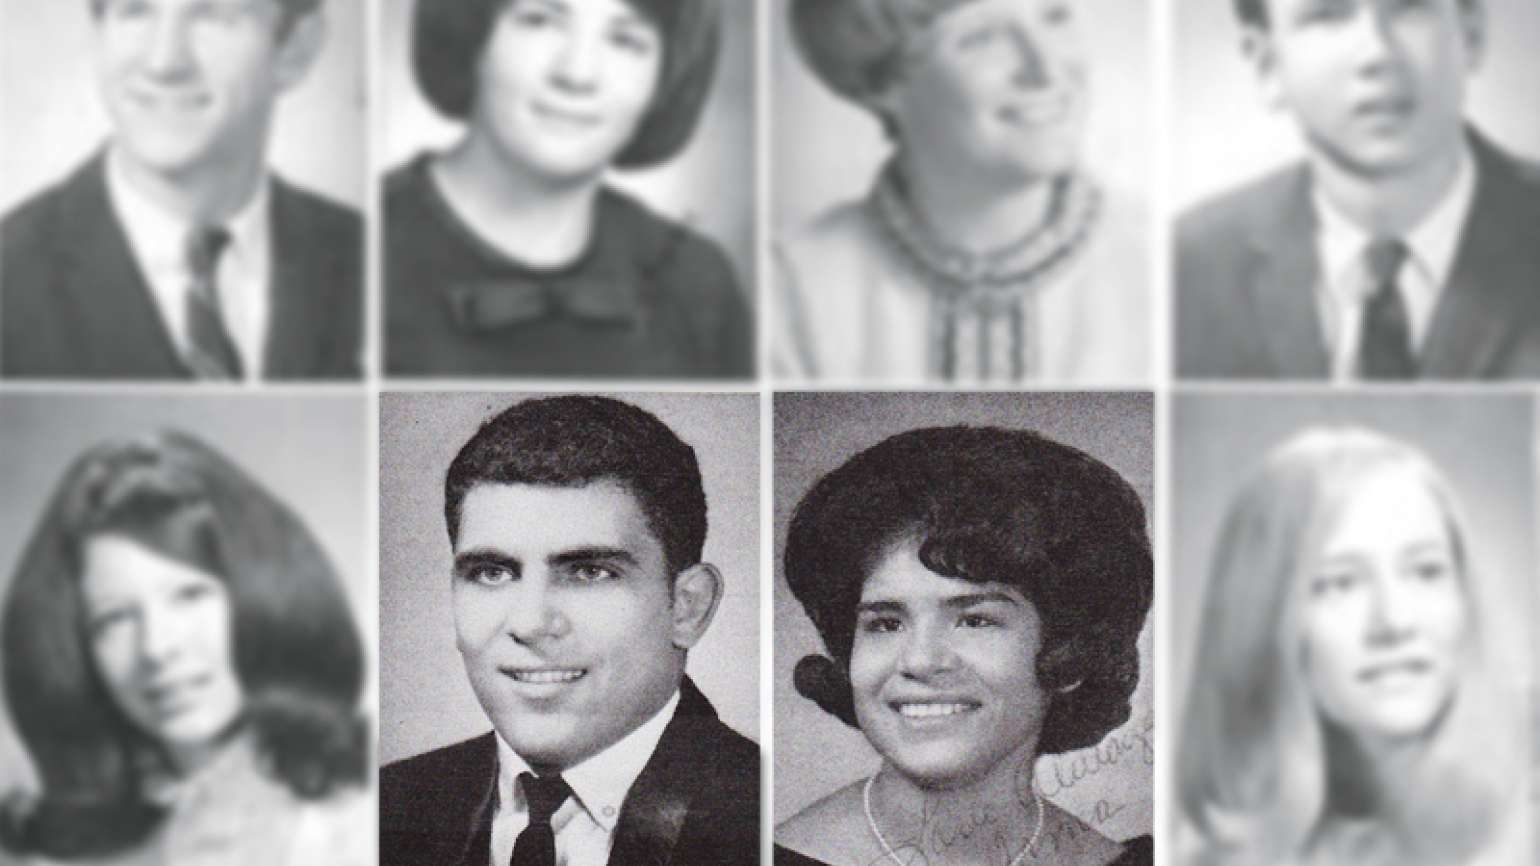 Yearbook photos of Irma and Ernie